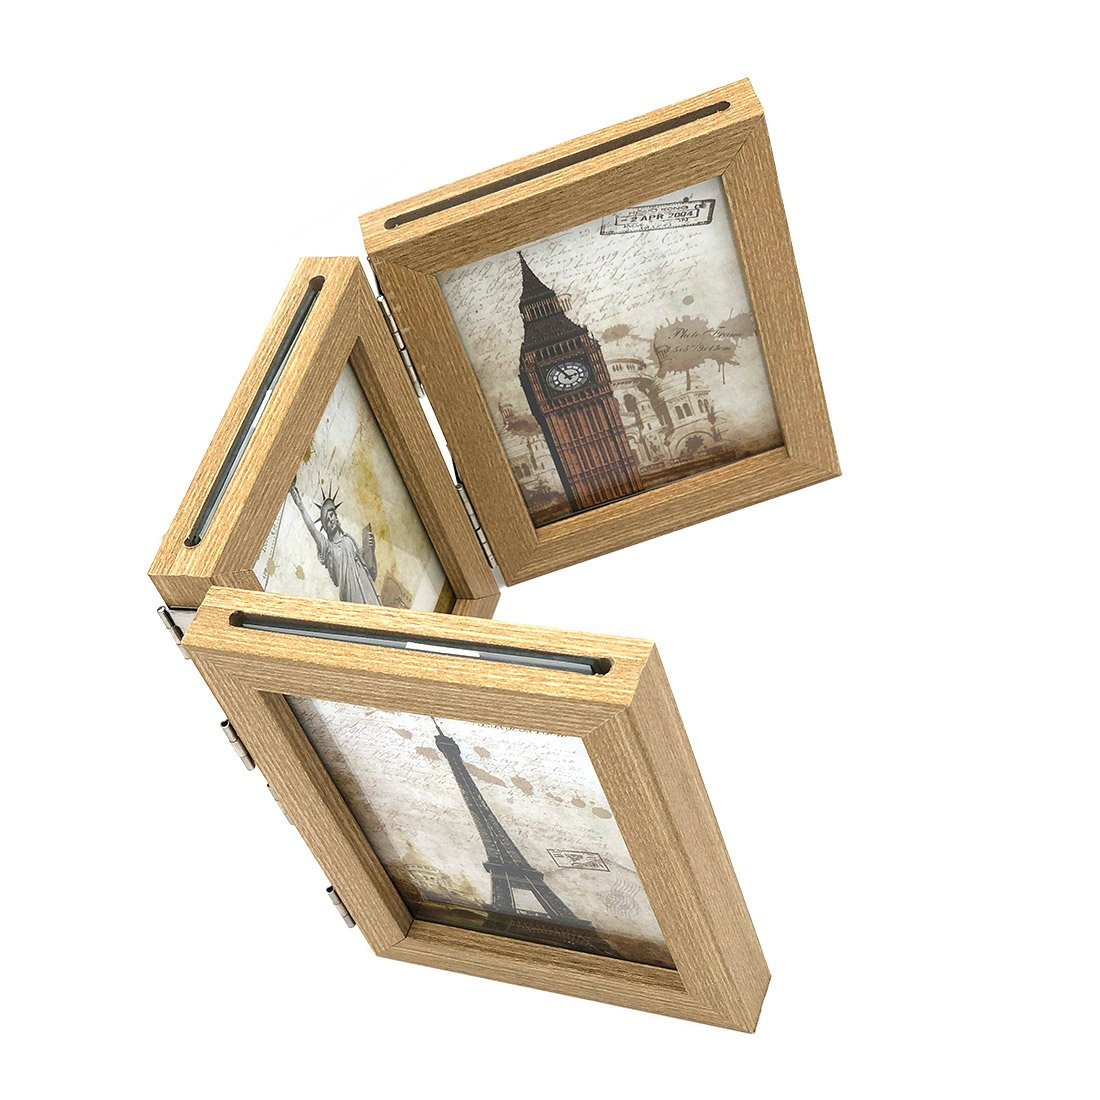 INEYMALL Wooden Photo Frame Folding 3 Stage Photo Frame With Glass 3.5x5 (beige) by INEYMALL (Image #2)